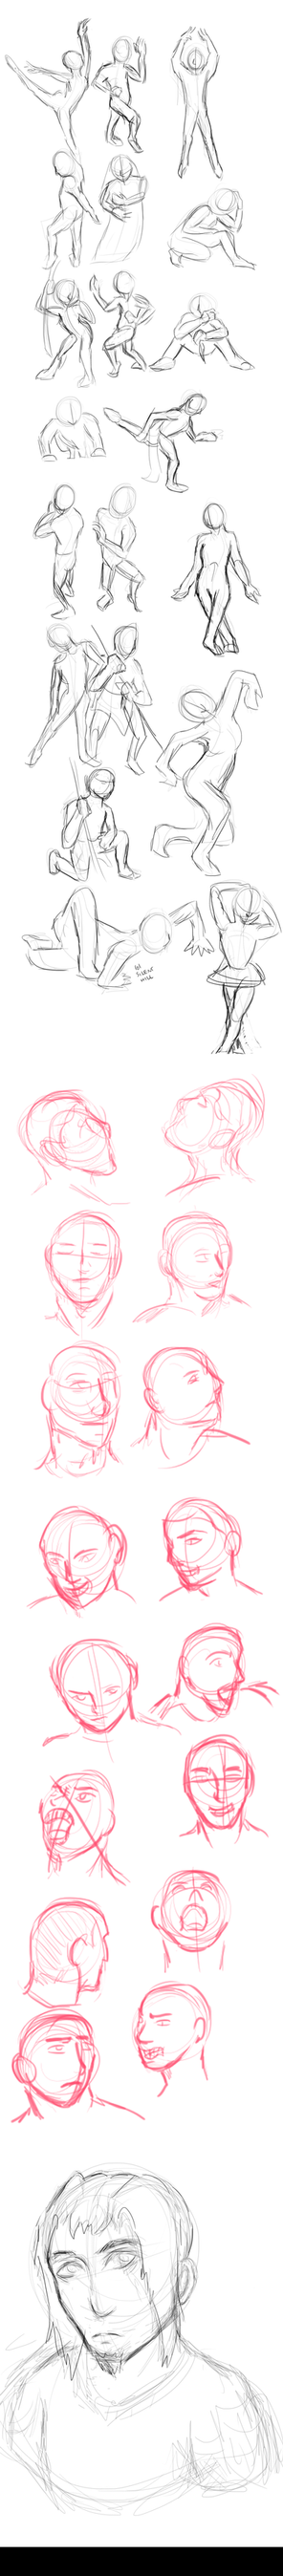 Figure + expression sketching by TheUltione